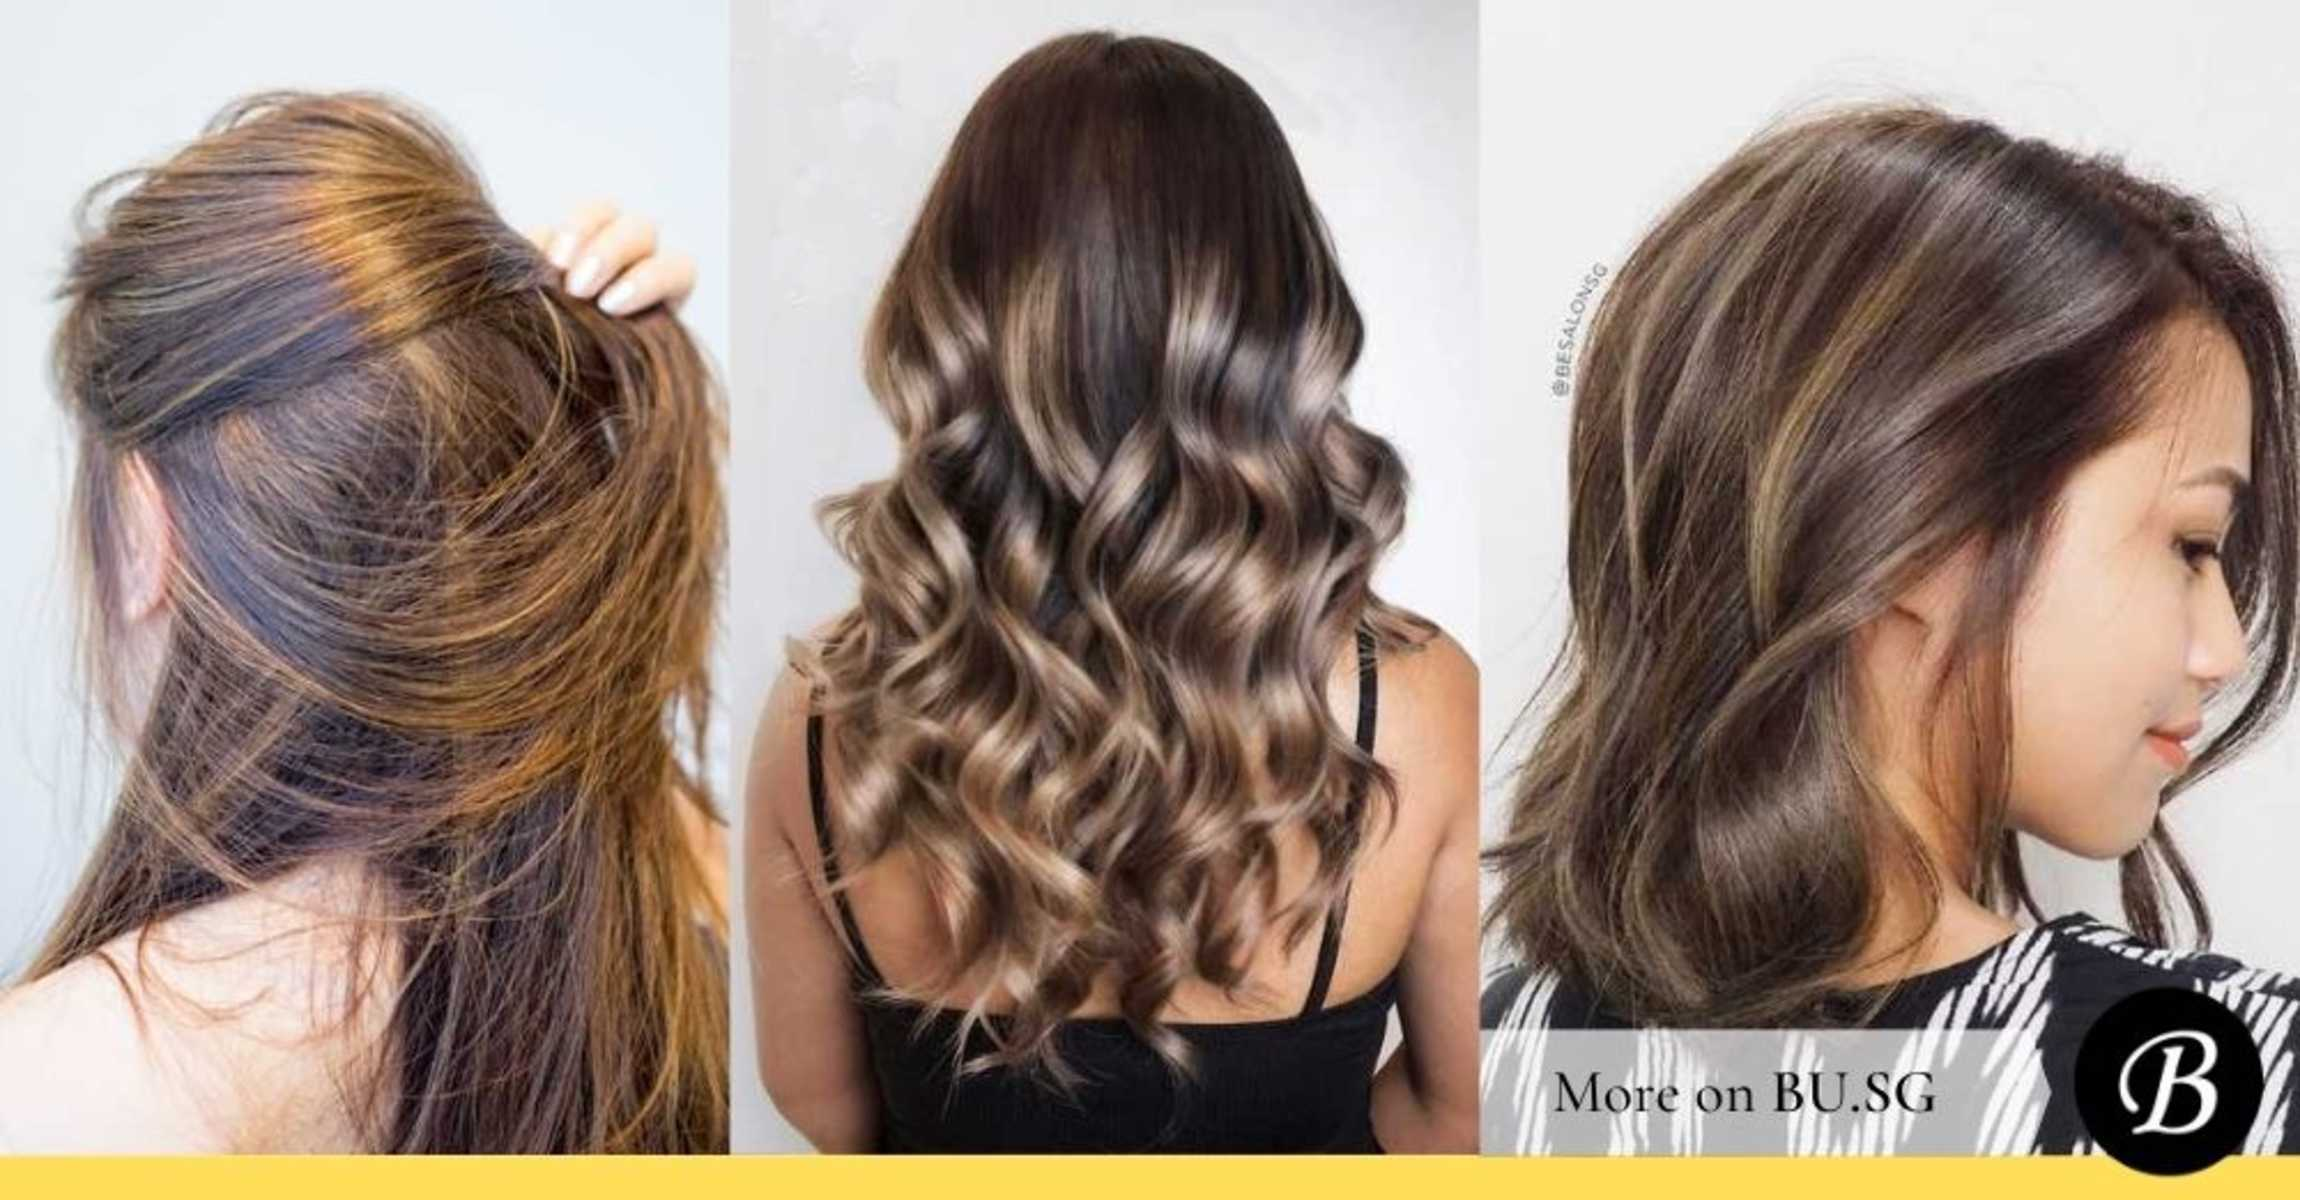 Balayage Vs Highlights Vs Lowlights Vs Sombre Vs Airtouch Highlights Vs Babylights Vs Ombre Vs Sombre